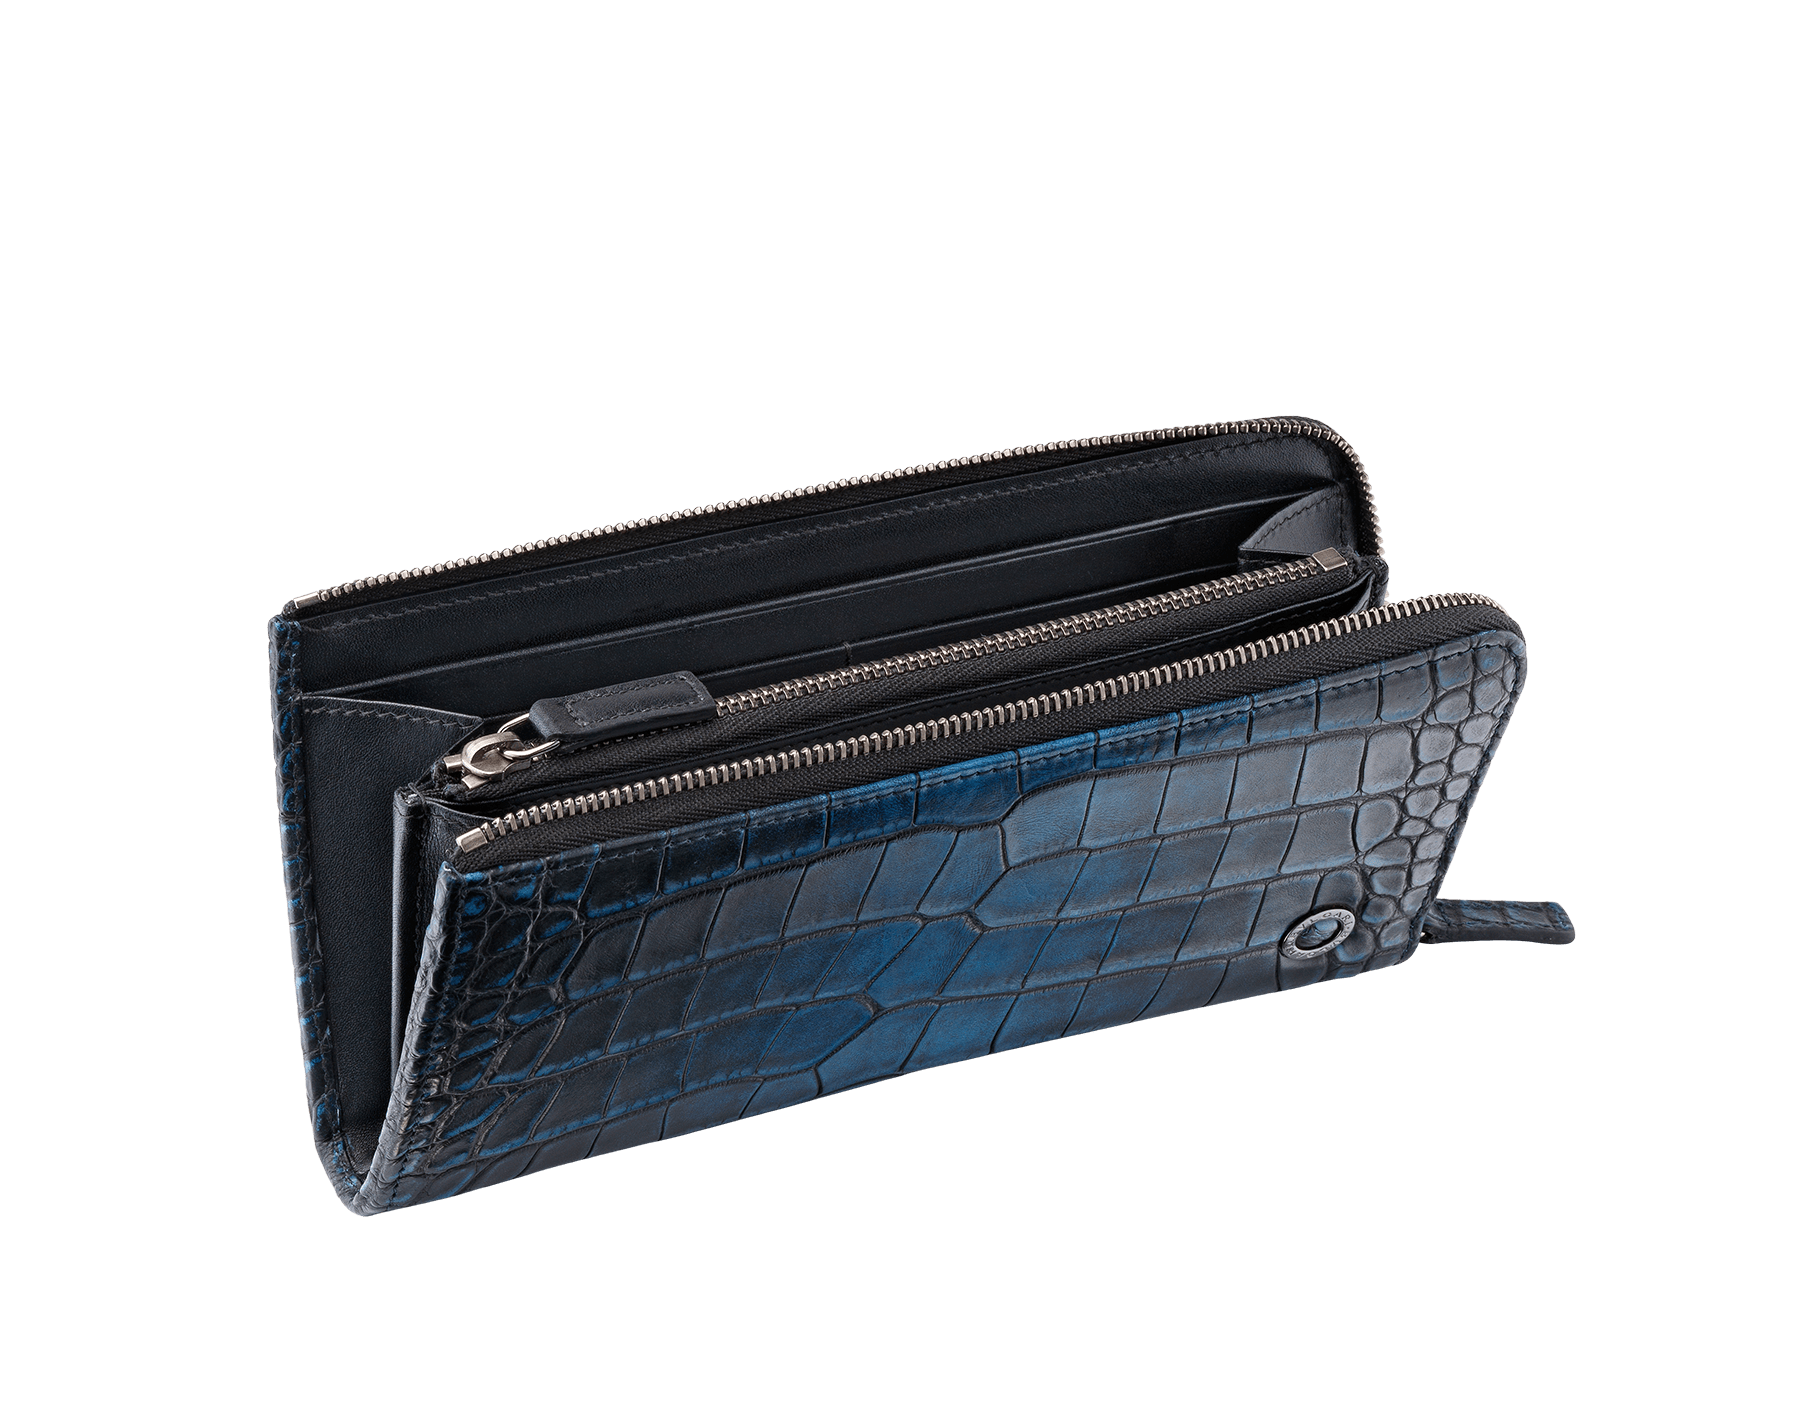 L-shaped zipped wallet in midnight blue alligator skin and black smooth calf leather with brass dark ruthenium plated hardware featuring the Bulgari-Bulgari motif. 38932 image 2